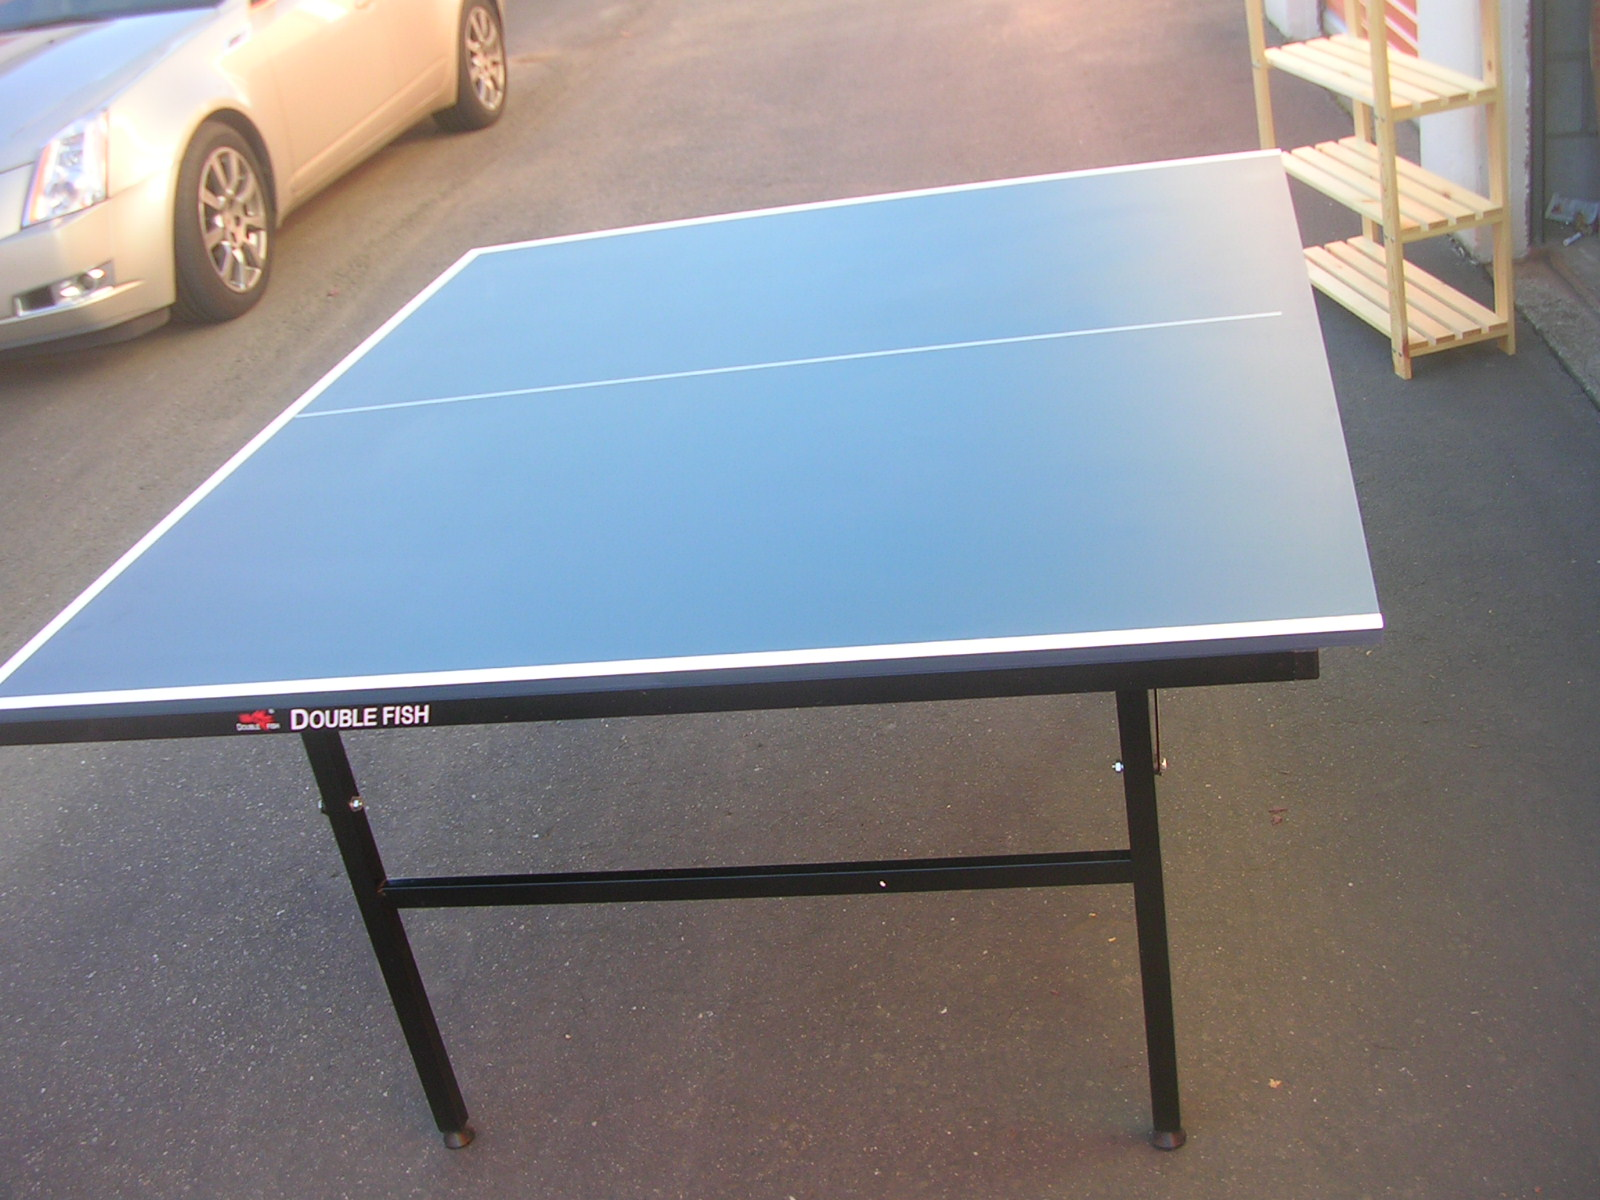 Huamart quality ping pong table folds no assebling for Table tennis 99